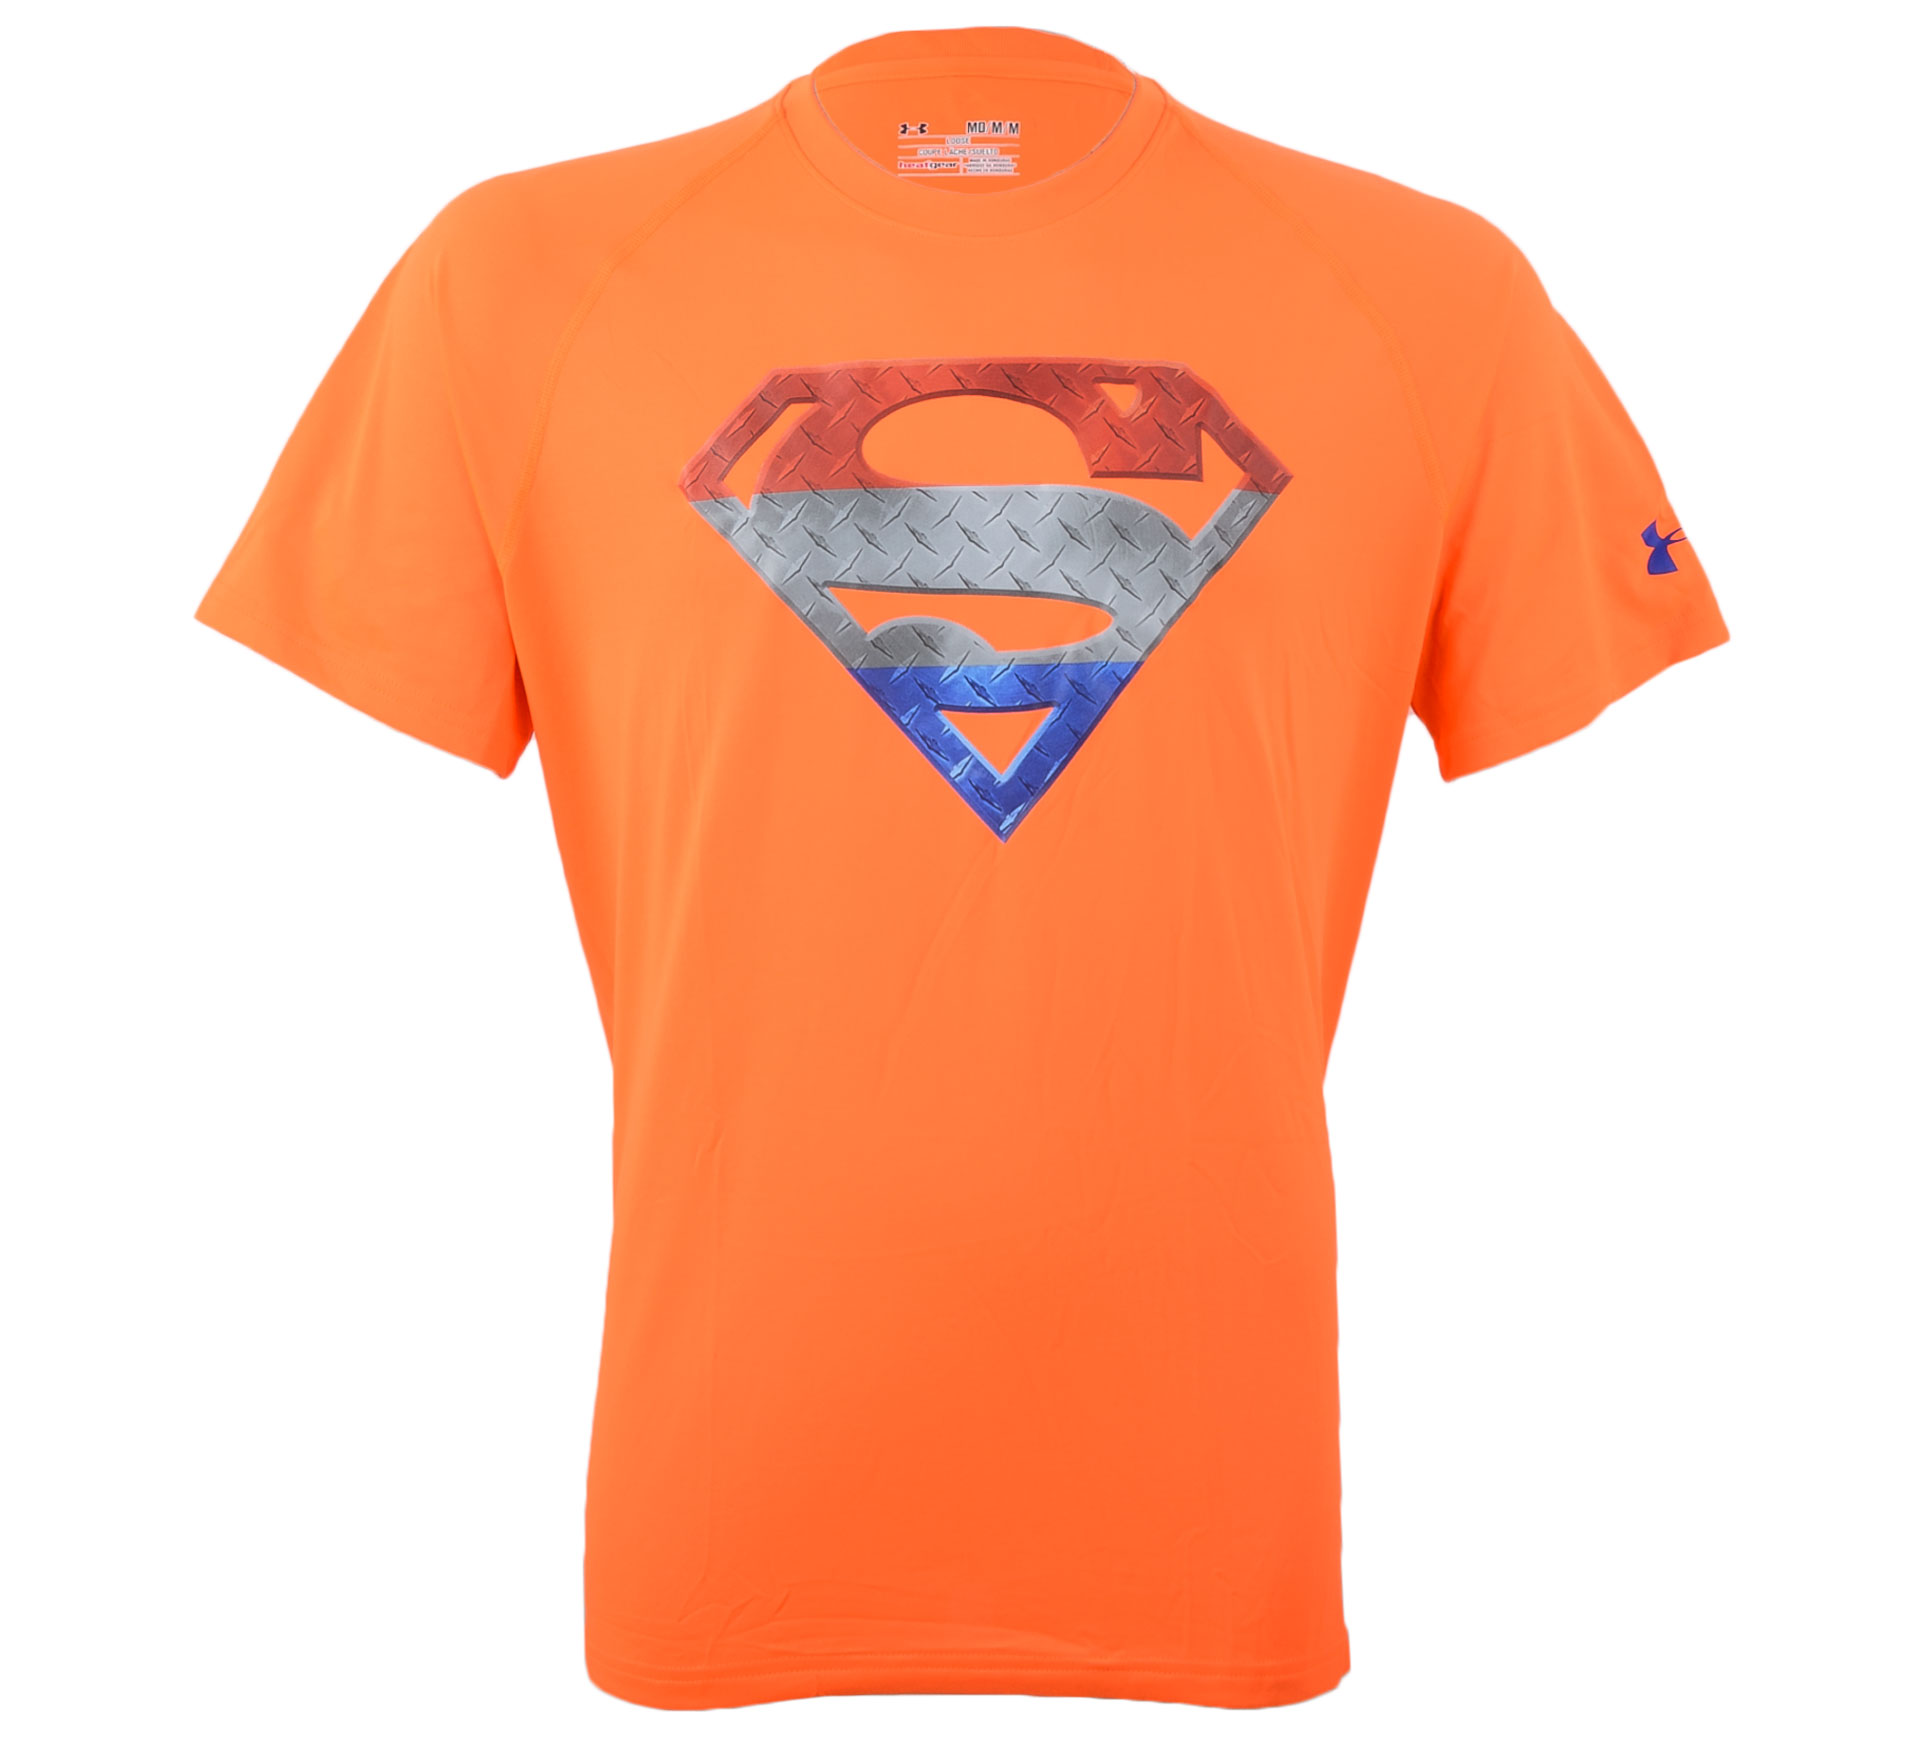 Under Armour Tech Holland Superman T-shirt Heren oranje - rood - wit - blauw